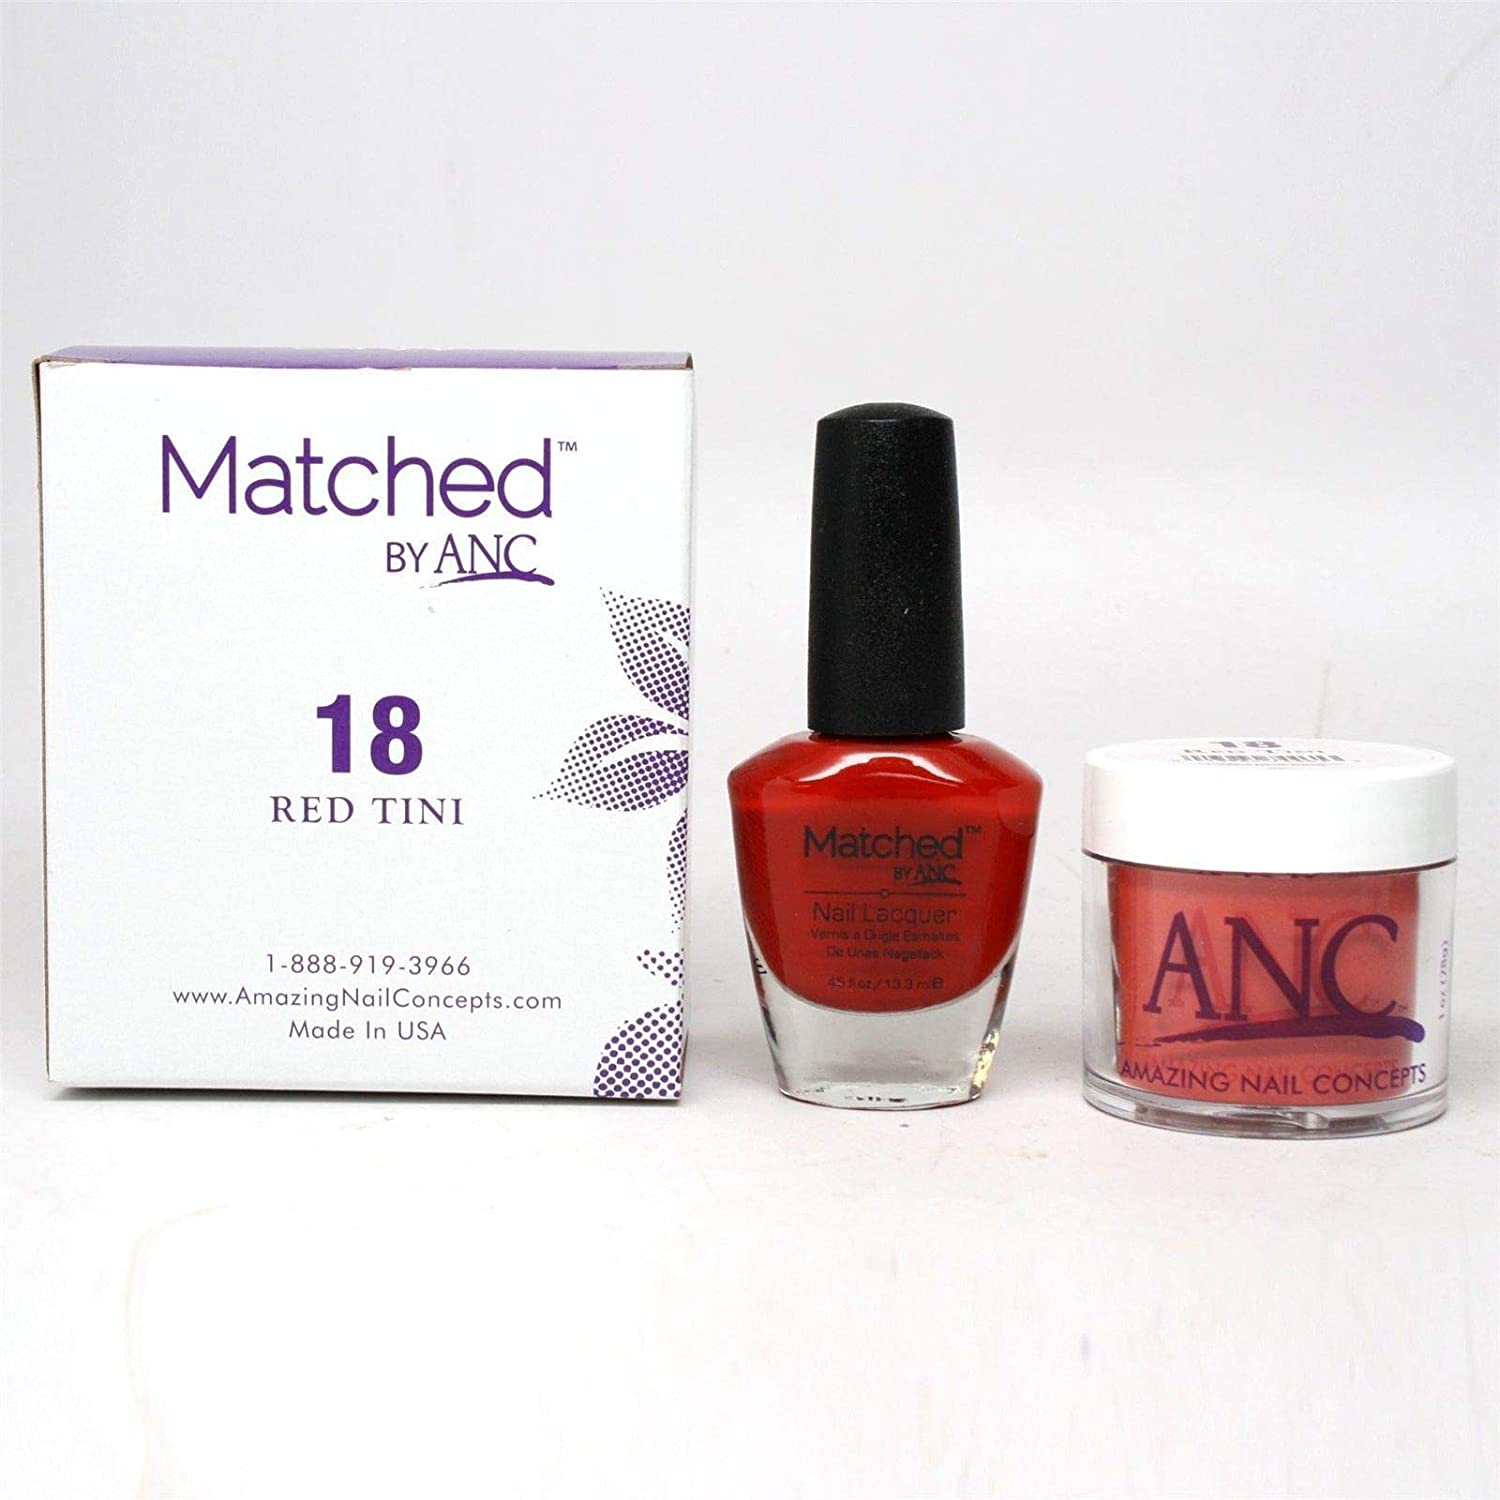 ANC Amazing Nail Concepts Matched kit # 18 Red Tini